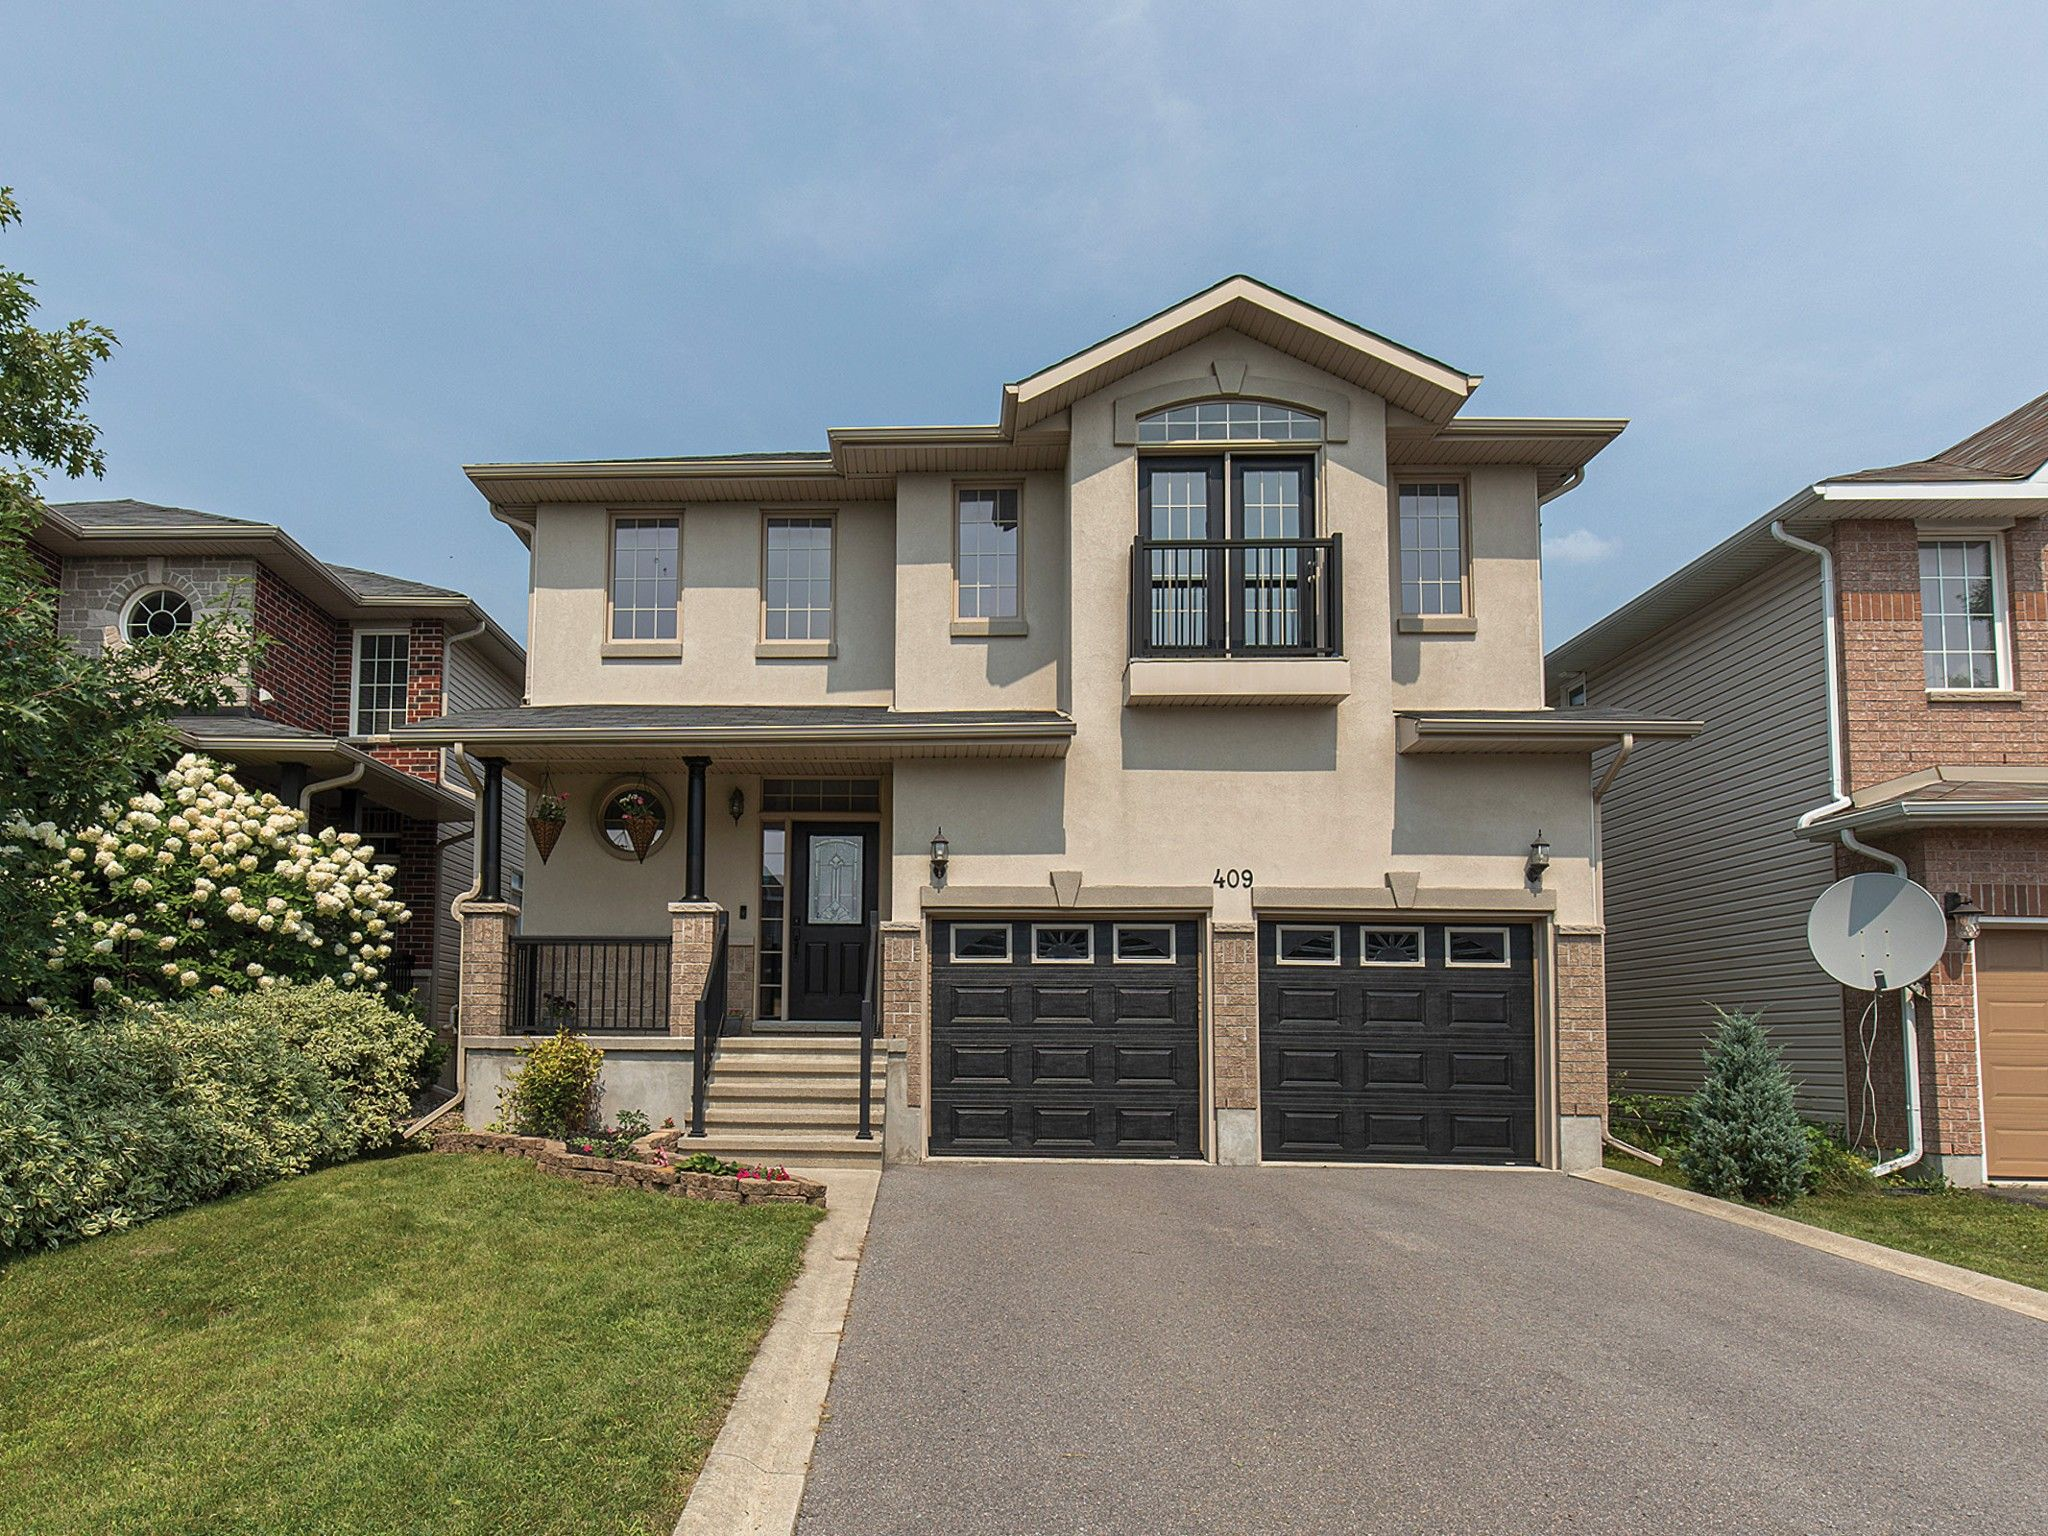 Main Photo: 409 CAVENDISH Crescent in Kingston: House for sale (42 - City Northwest)  : MLS®# 40156976